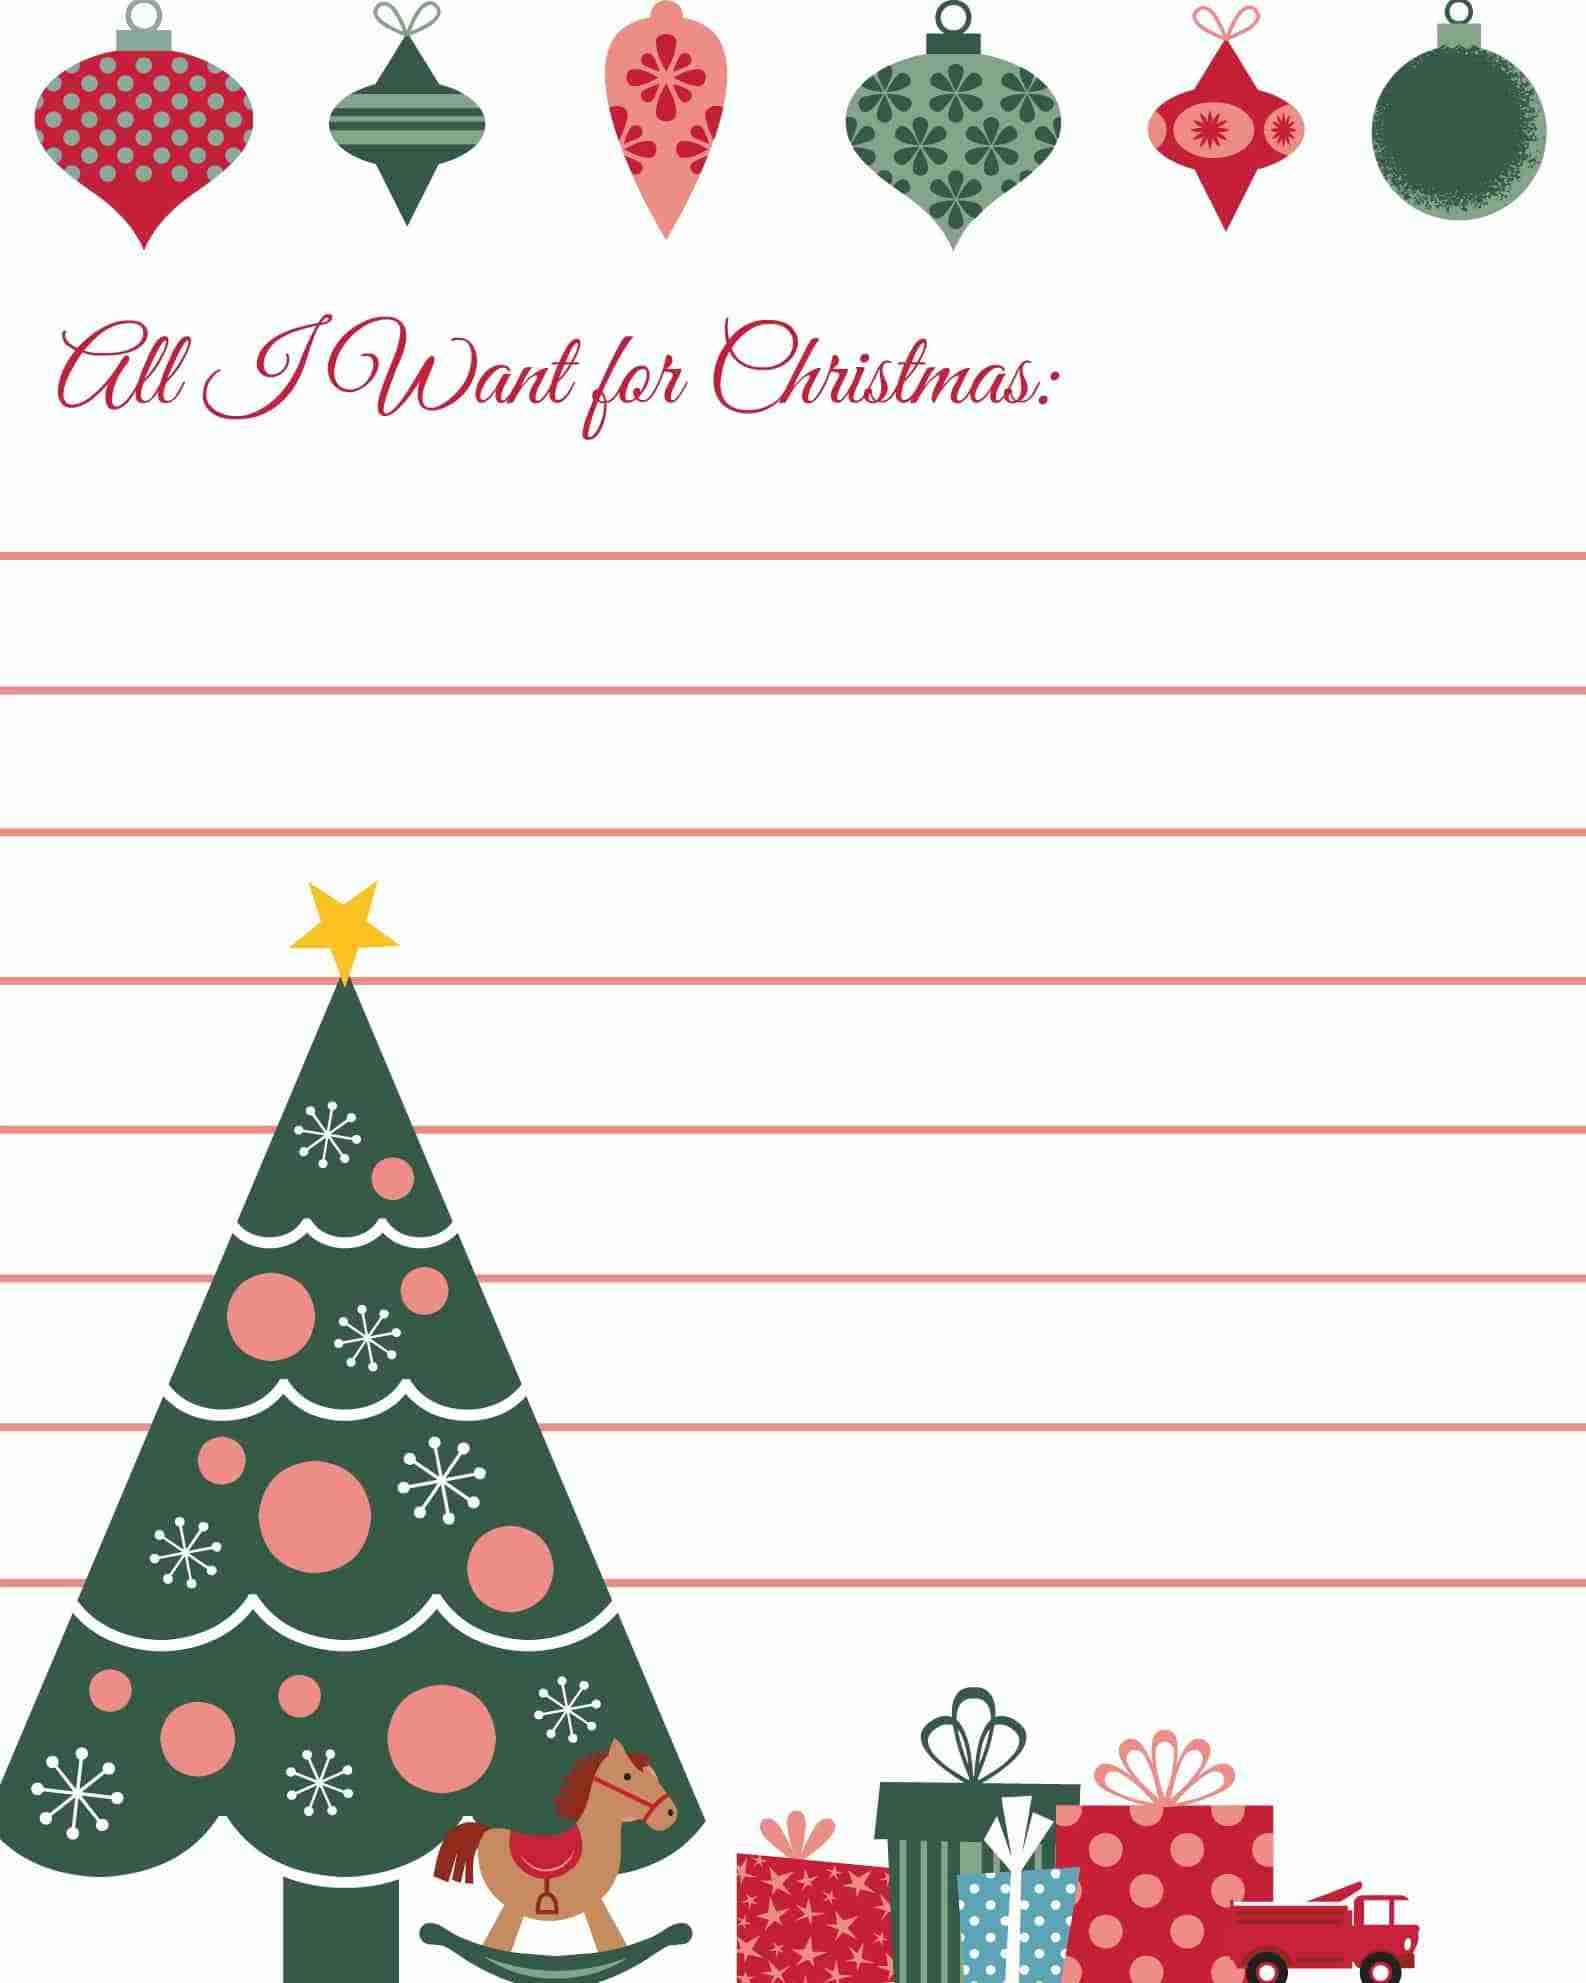 All I Want For Christmas Printable Wish List | Daily Dish Magazine |  Recipes | Travel | Crafts  Christmas Wish List Printable